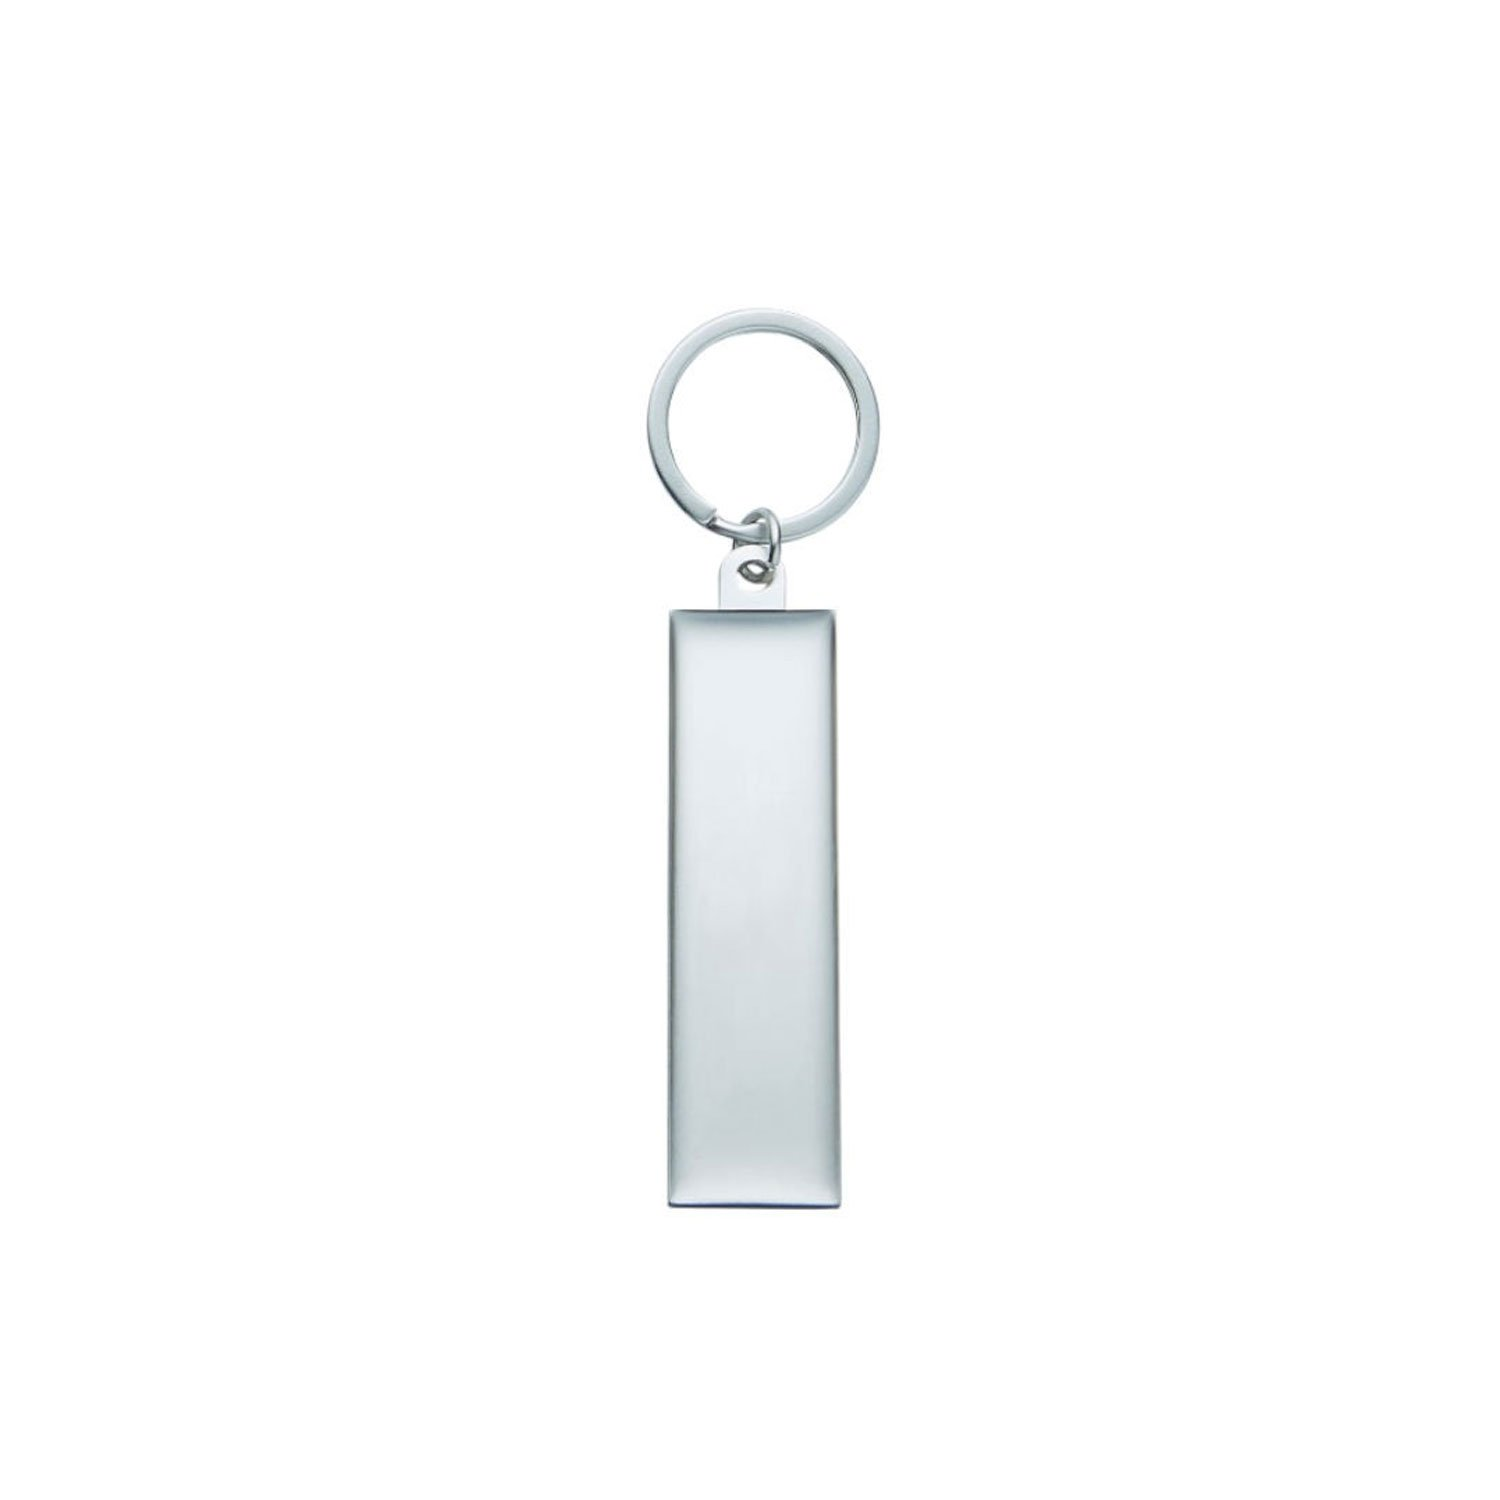 Sahara Force India F1 Team Keyring Accesories Keyrings Shop By Team Formula 1 Teams Sahara Force India F1store Net